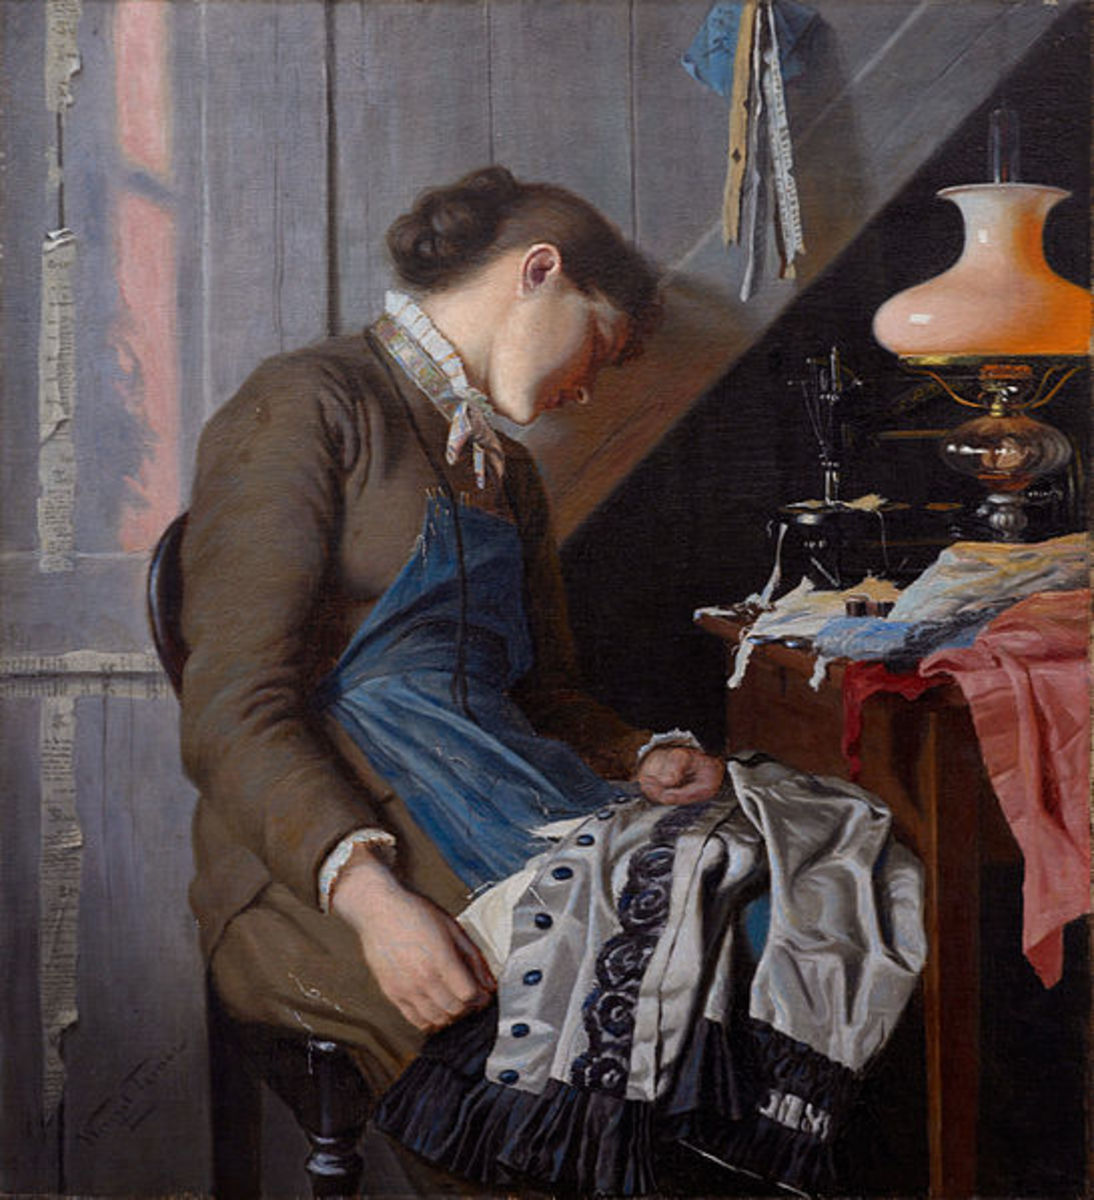 Wenzel Tornøe's  Seamstress. Whit Sunday morning.  Bares an eerie resemblance to a cosplayer's last minute preparations for con.